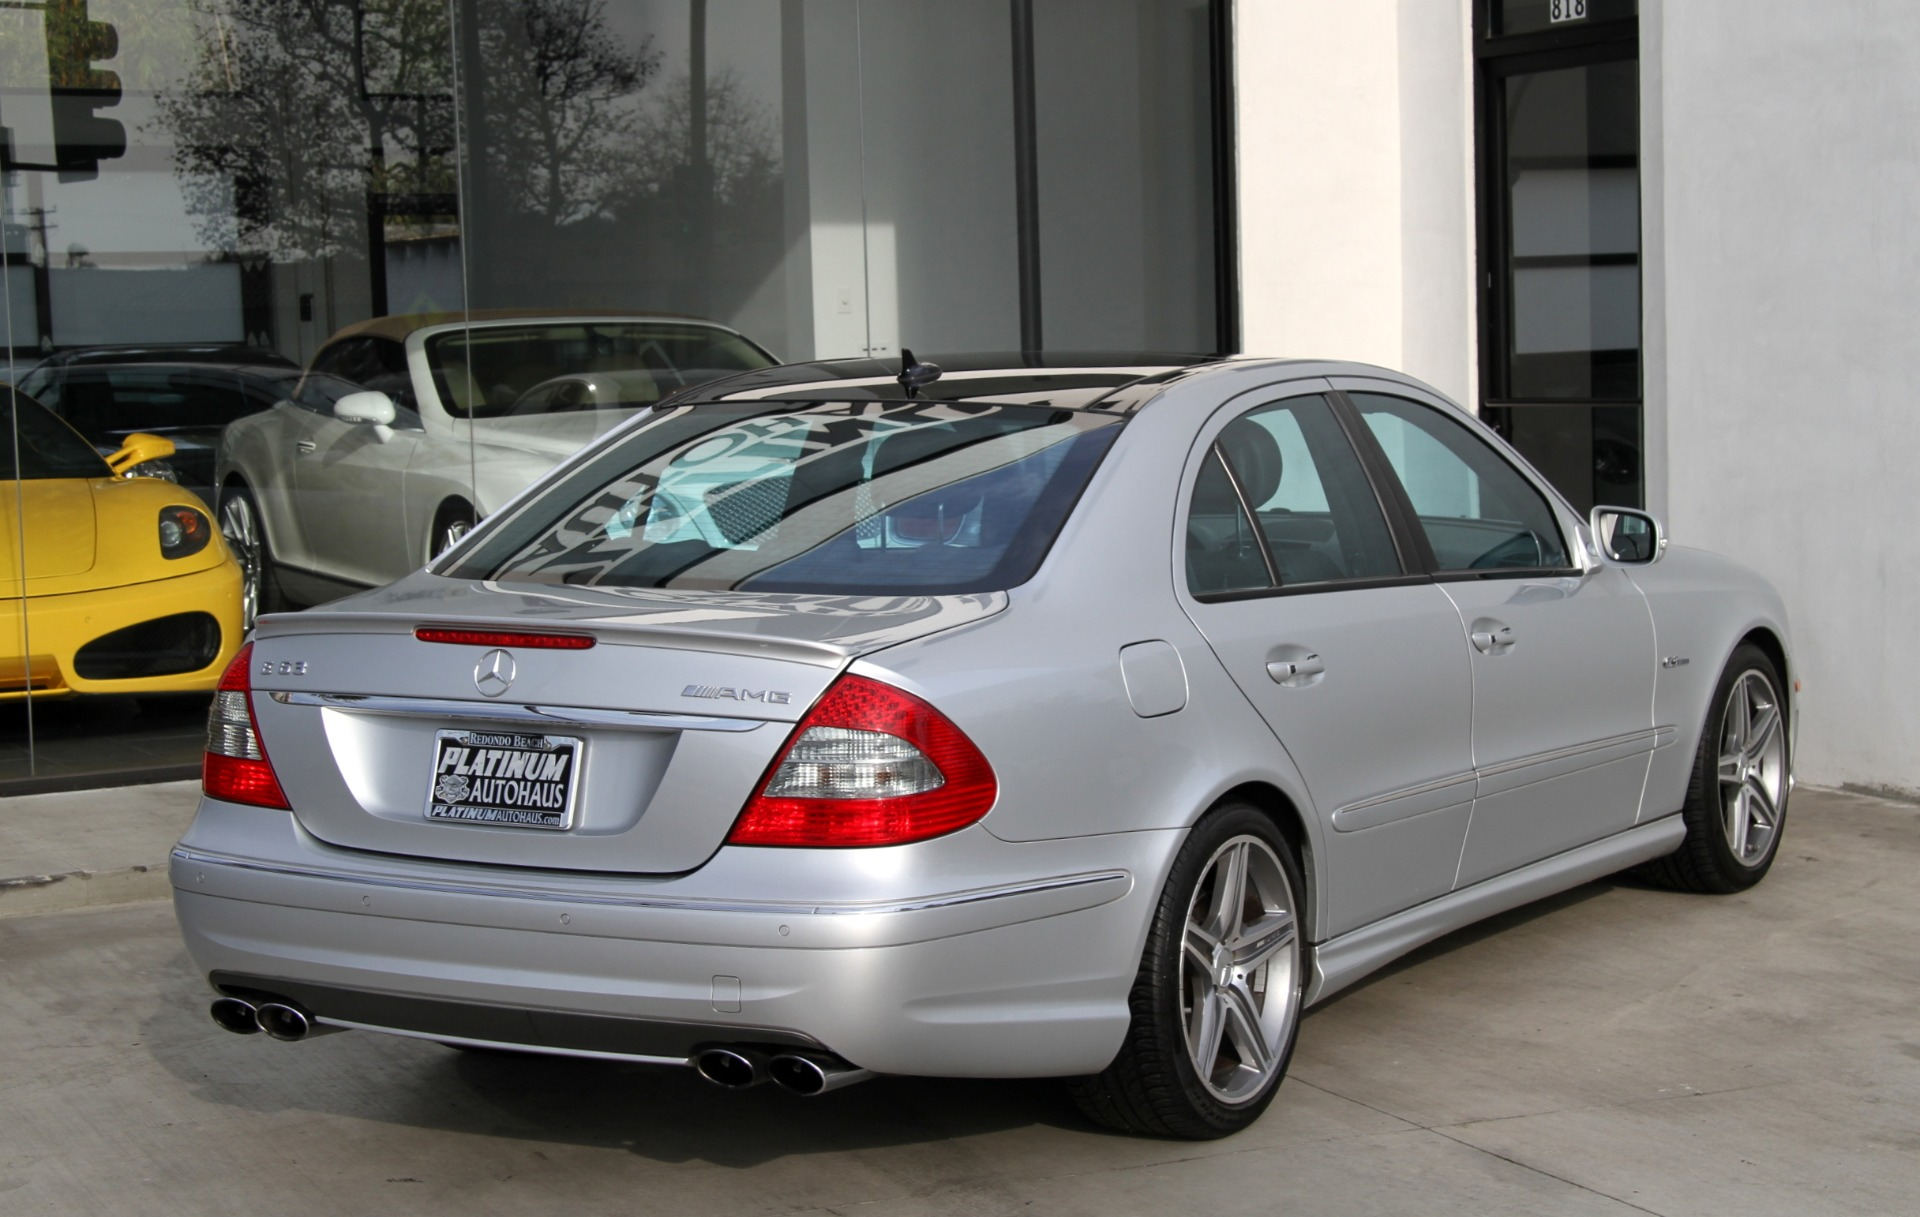 Mercedes Dealership Near Me >> 2009 Mercedes-Benz E 63 AMG E 63 AMG Stock # 6300 for sale ...